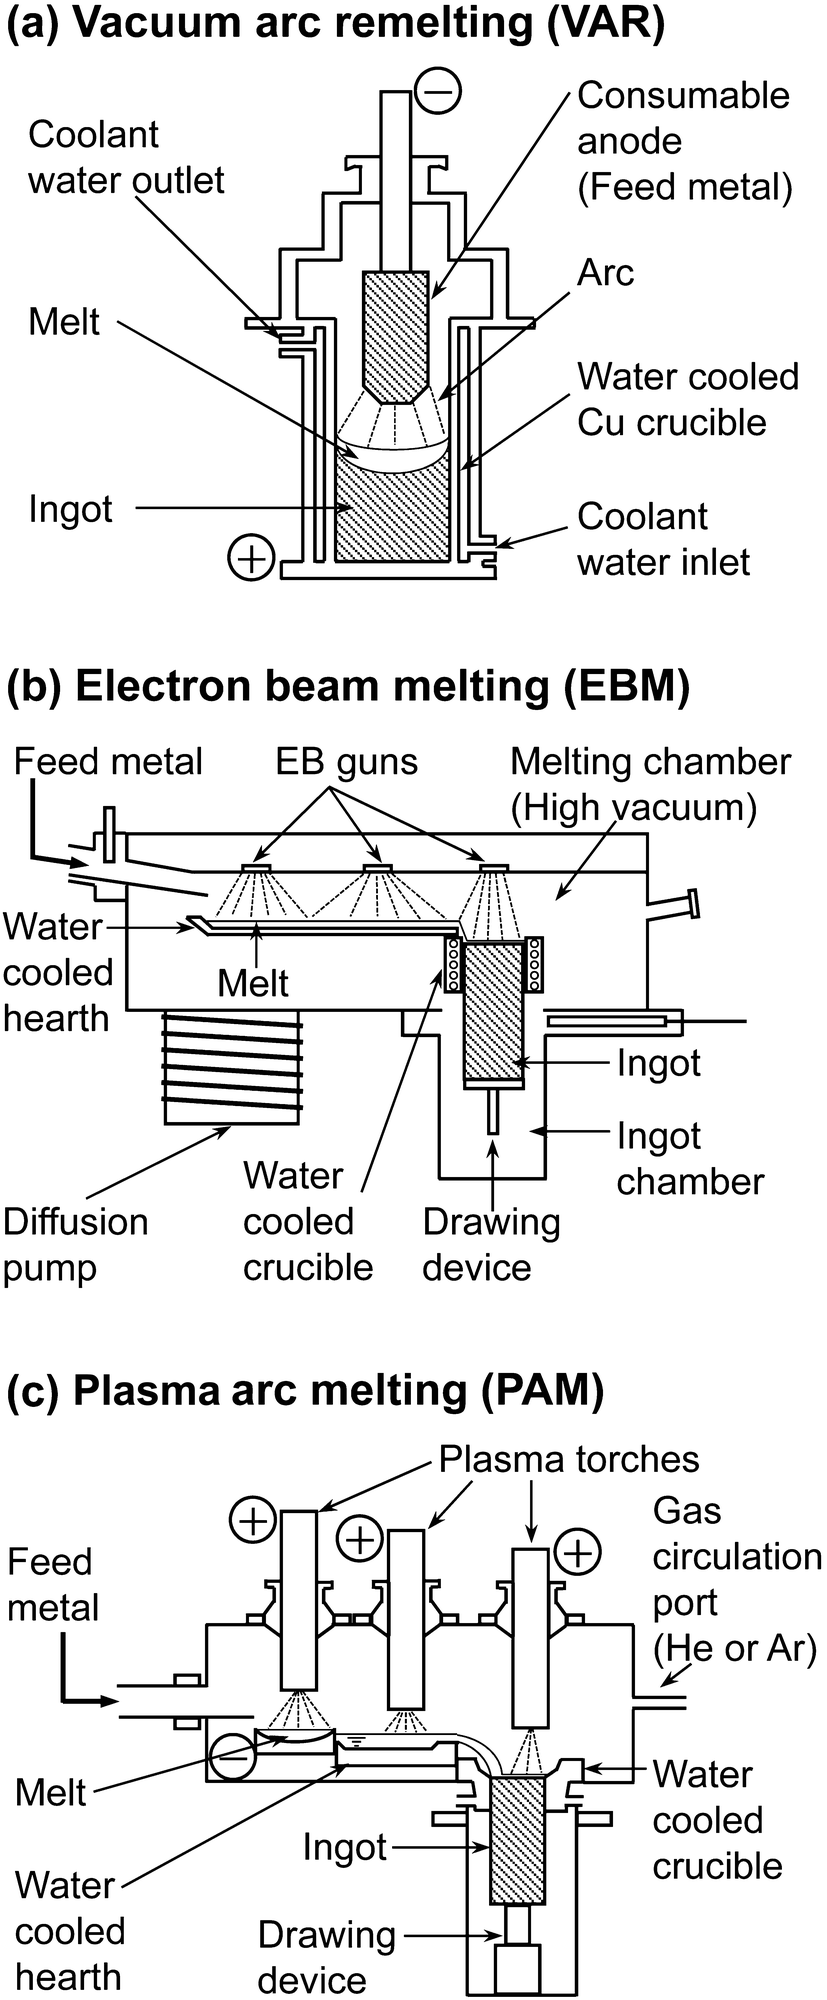 Current Status of Titanium Recycling and Related Technologies